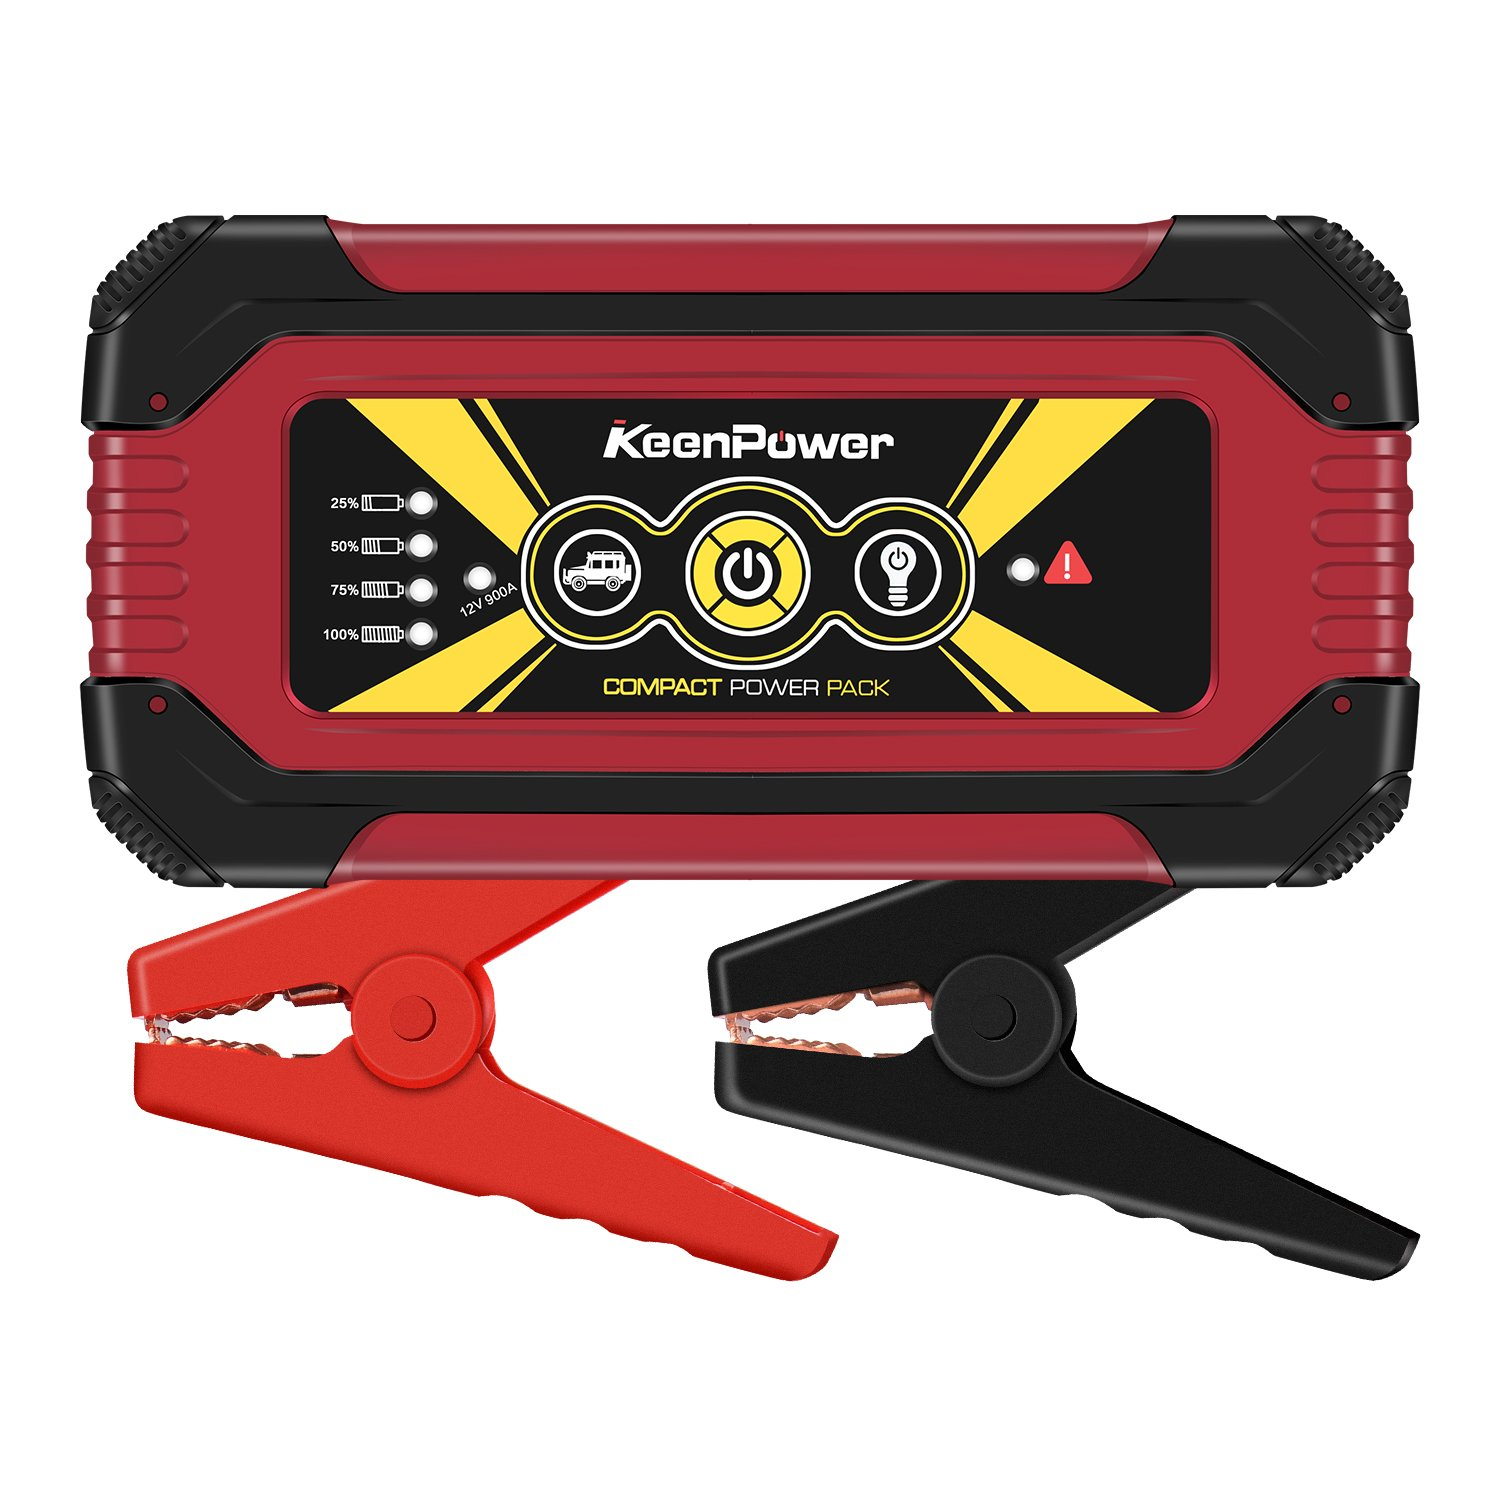 KeenPower Portable Car Jump Starter Emergency Battery Booster Pack Charging Outputs (Black/Red/Yellow) (Black) (900A RED) (900A RED)